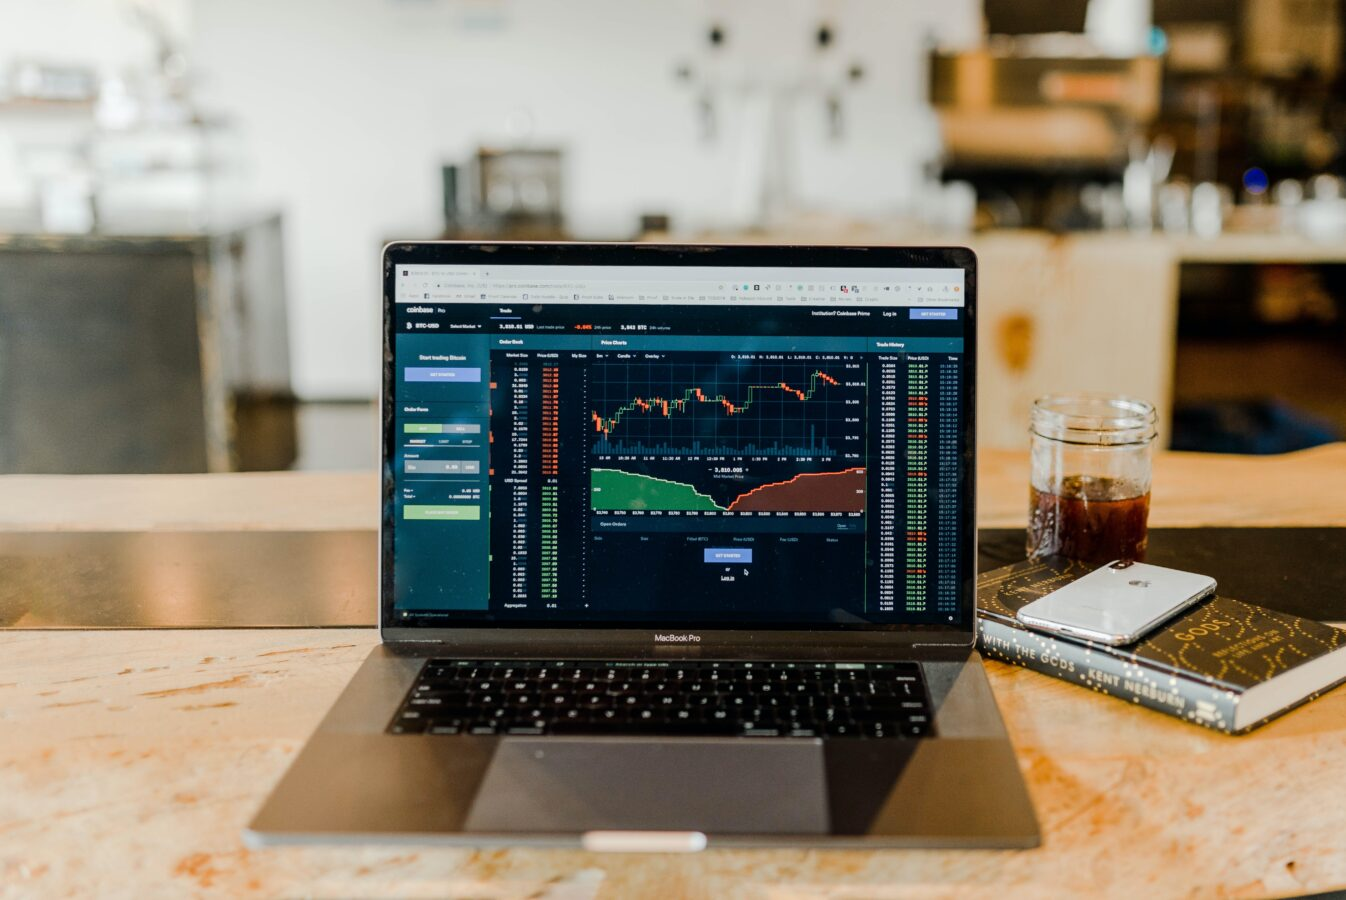 A laptop on the desk is used for trading cryptocurrency.